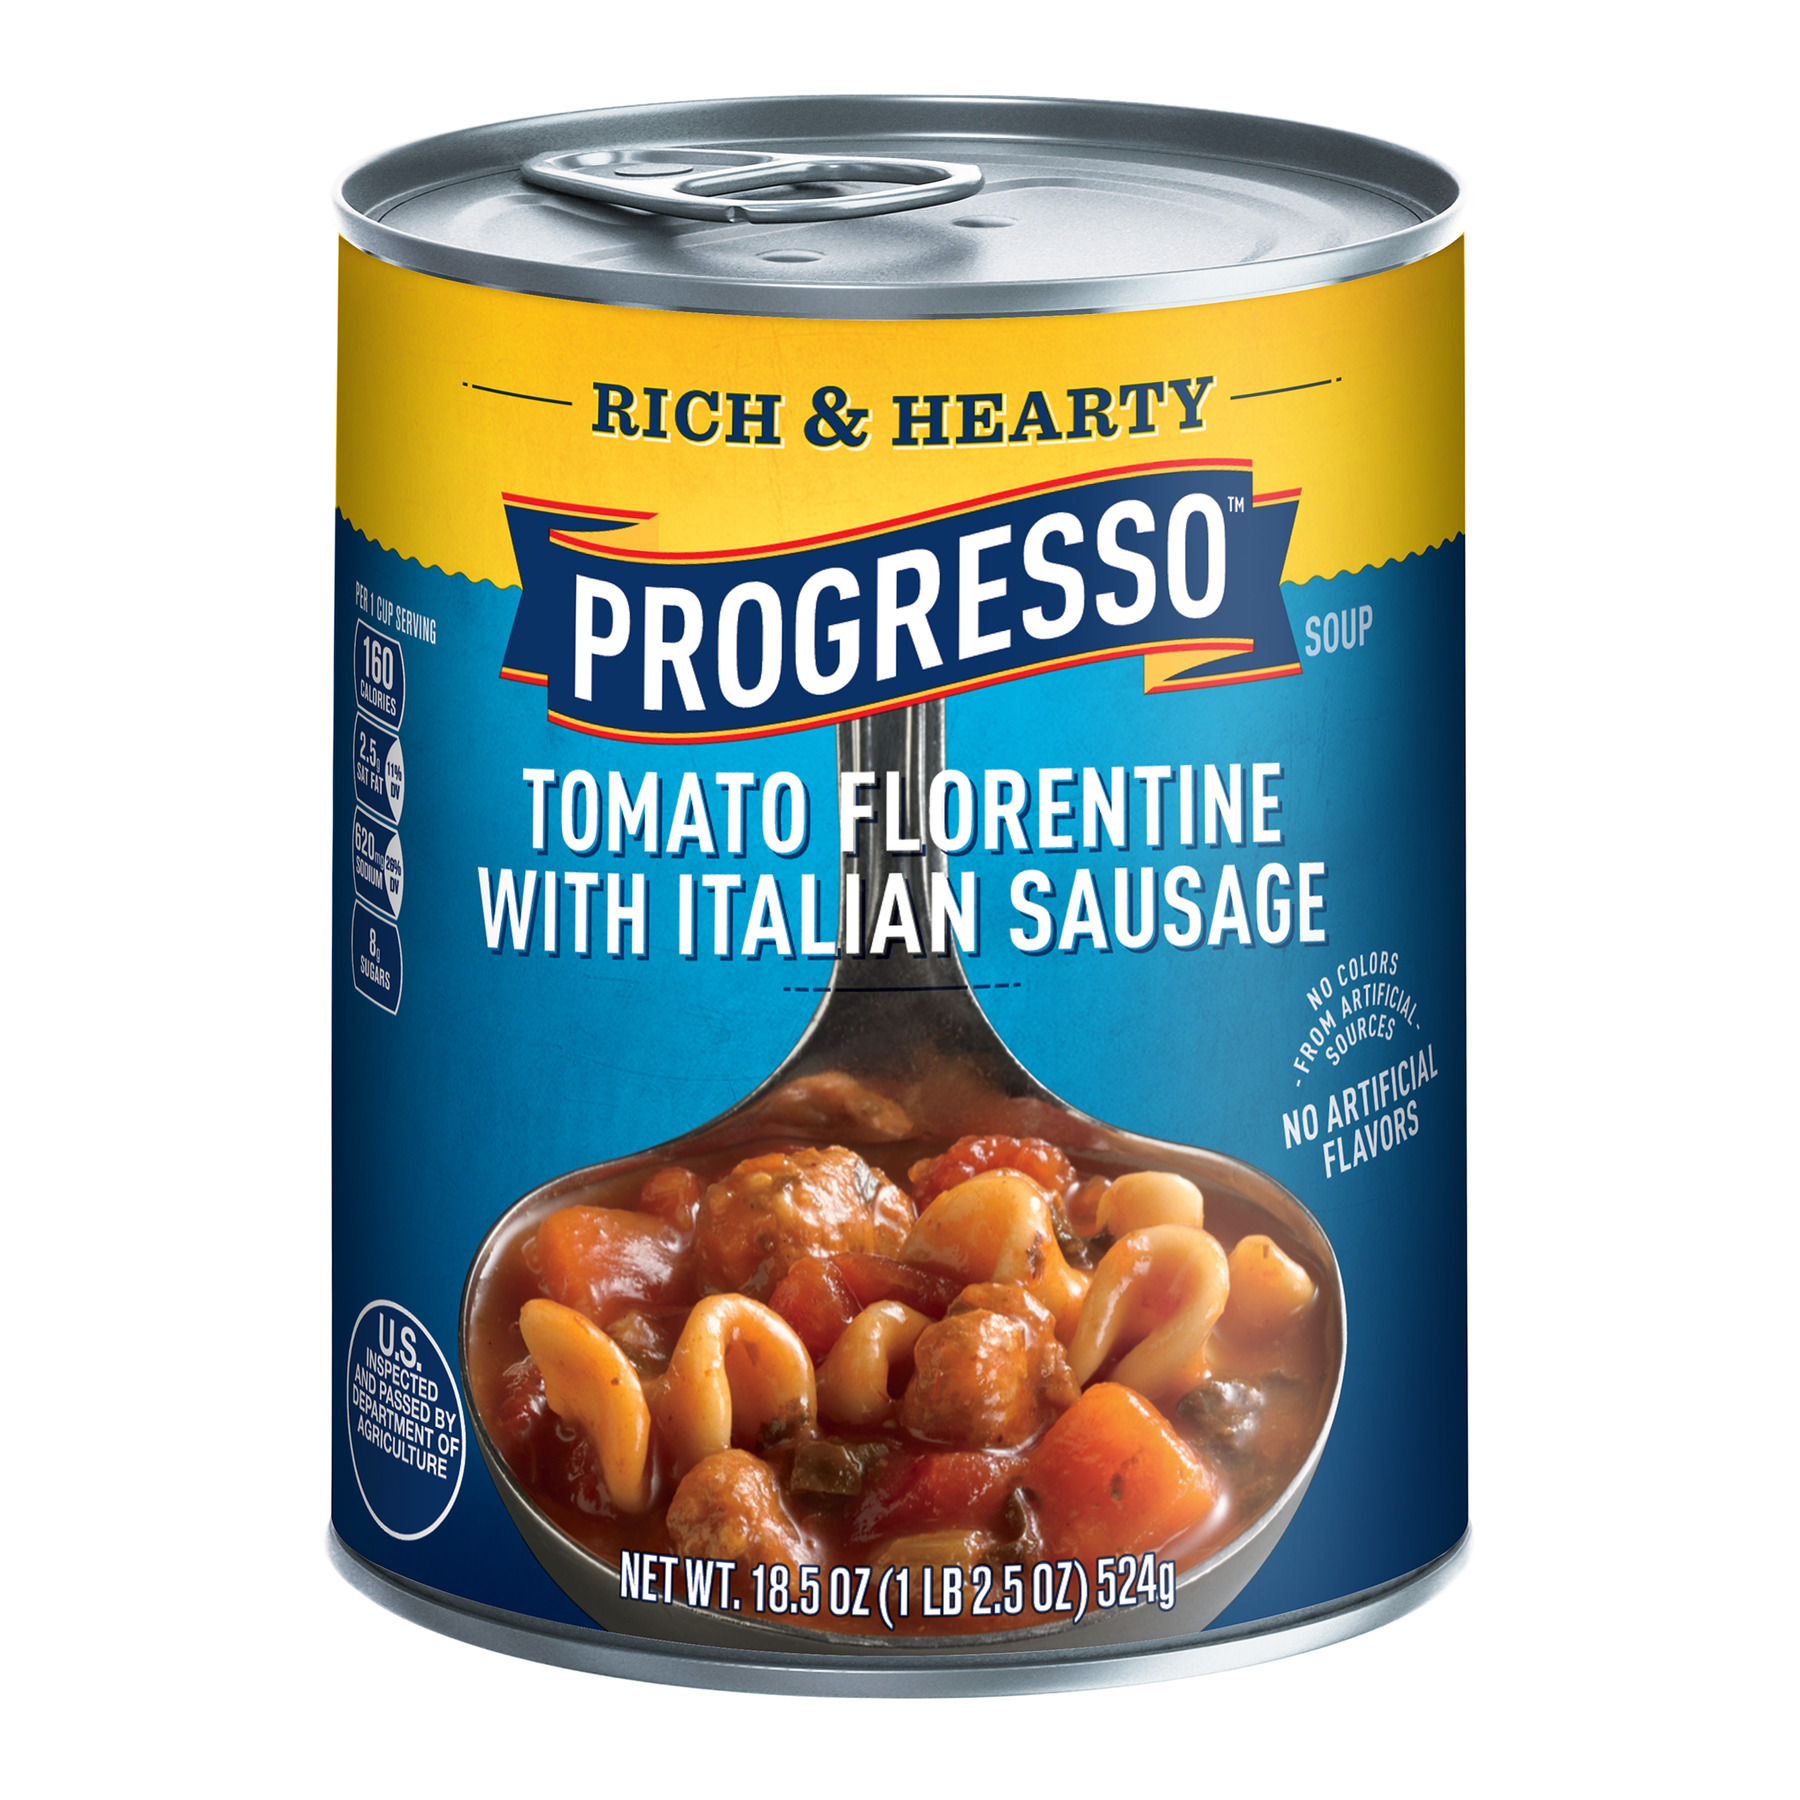 Progresso Soup, Rich & Hearty, Tomato Florentine with Italian Sausage Soup, 18.5 oz Can